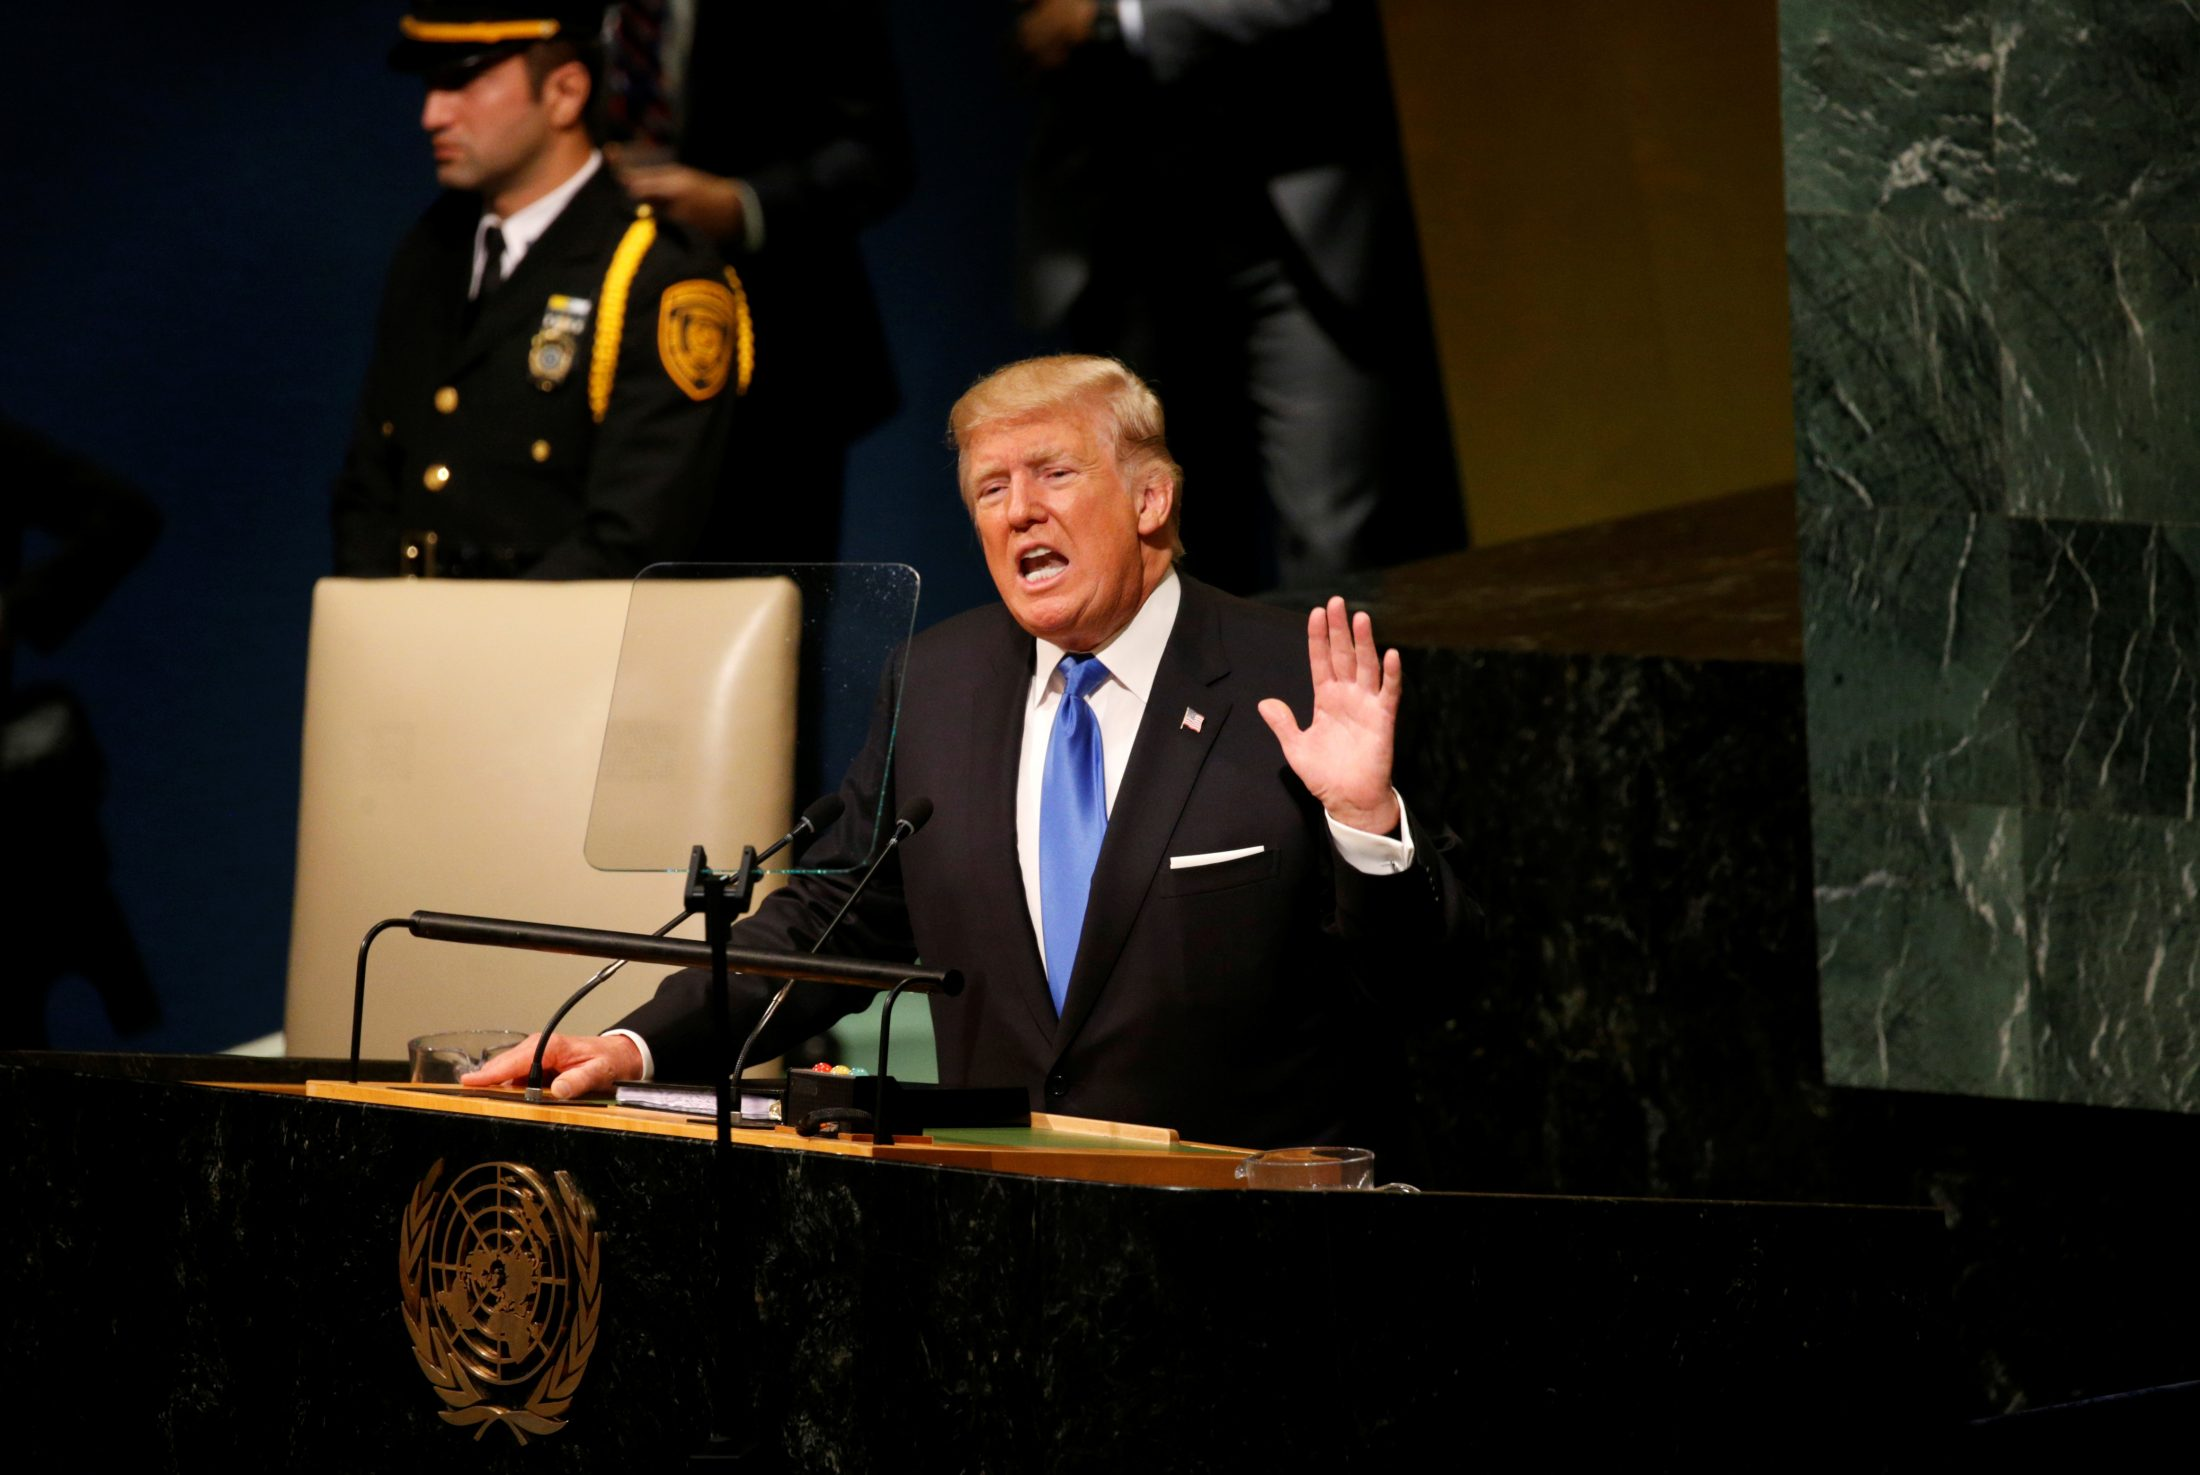 President Donald Trump delivers his address to the United Nations General Assembly in New York. Photo by Kevin Lamarque/Reuters